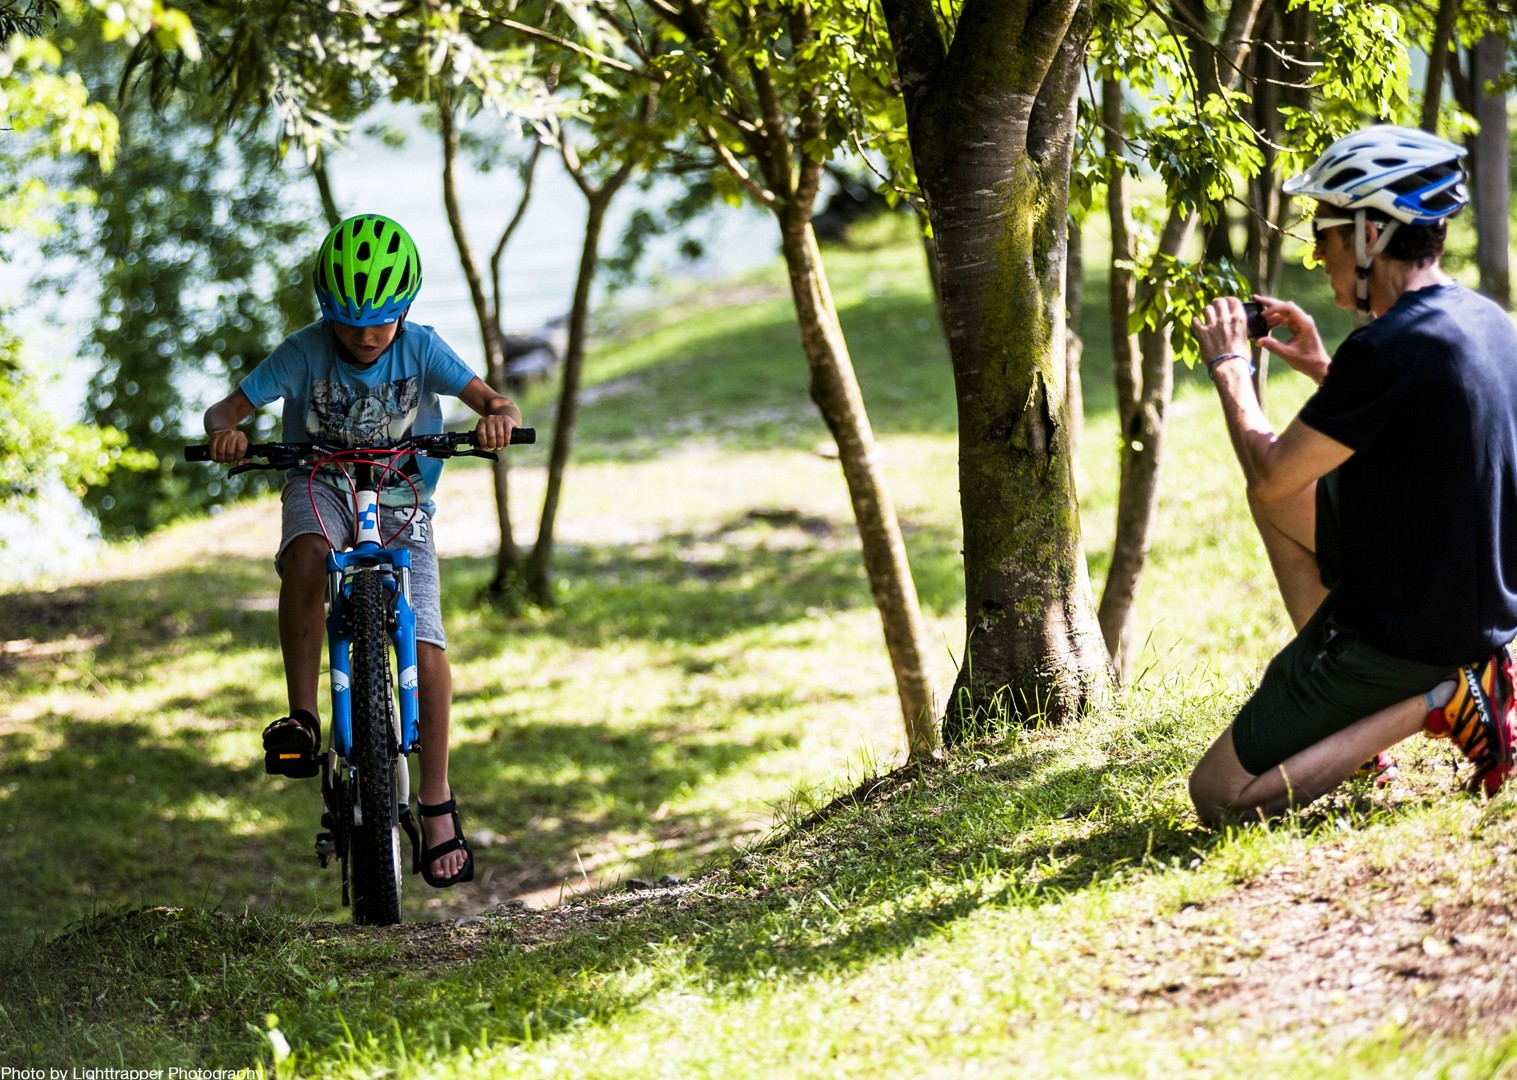 mount-subasio-italy-spirit-of-umbria-self-guided-leisure-cycling-holiday.jpg - Italy - Spirit of Umbria - Family Cycling